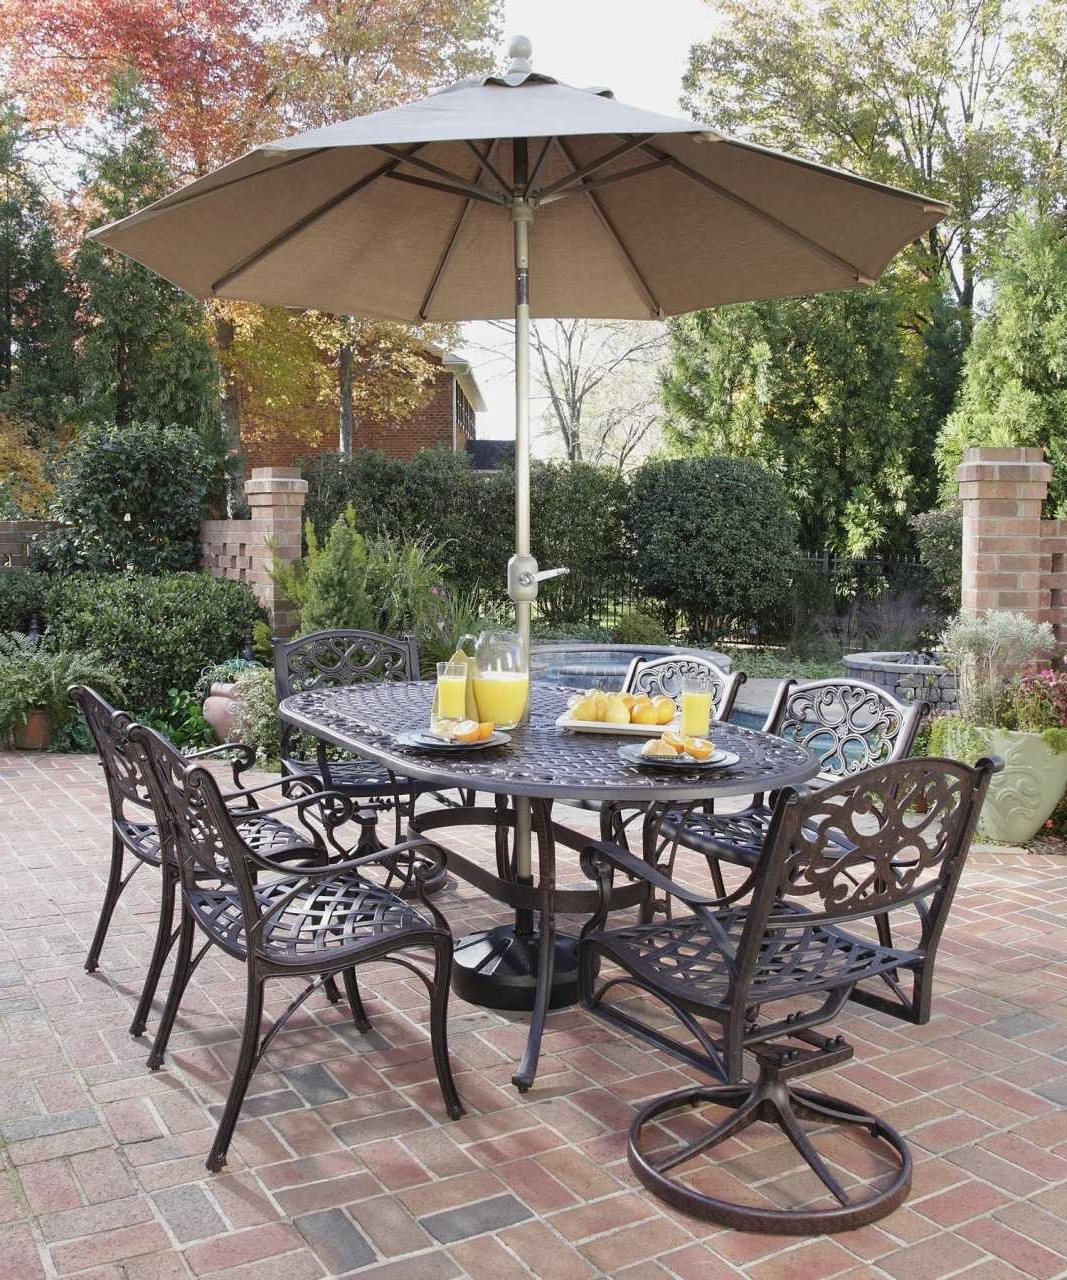 Patio Table And Chairs With Umbrellas With Regard To Trendy Fascinating Patio Table Sets With Umbrella Trends Including Cheap (View 12 of 20)